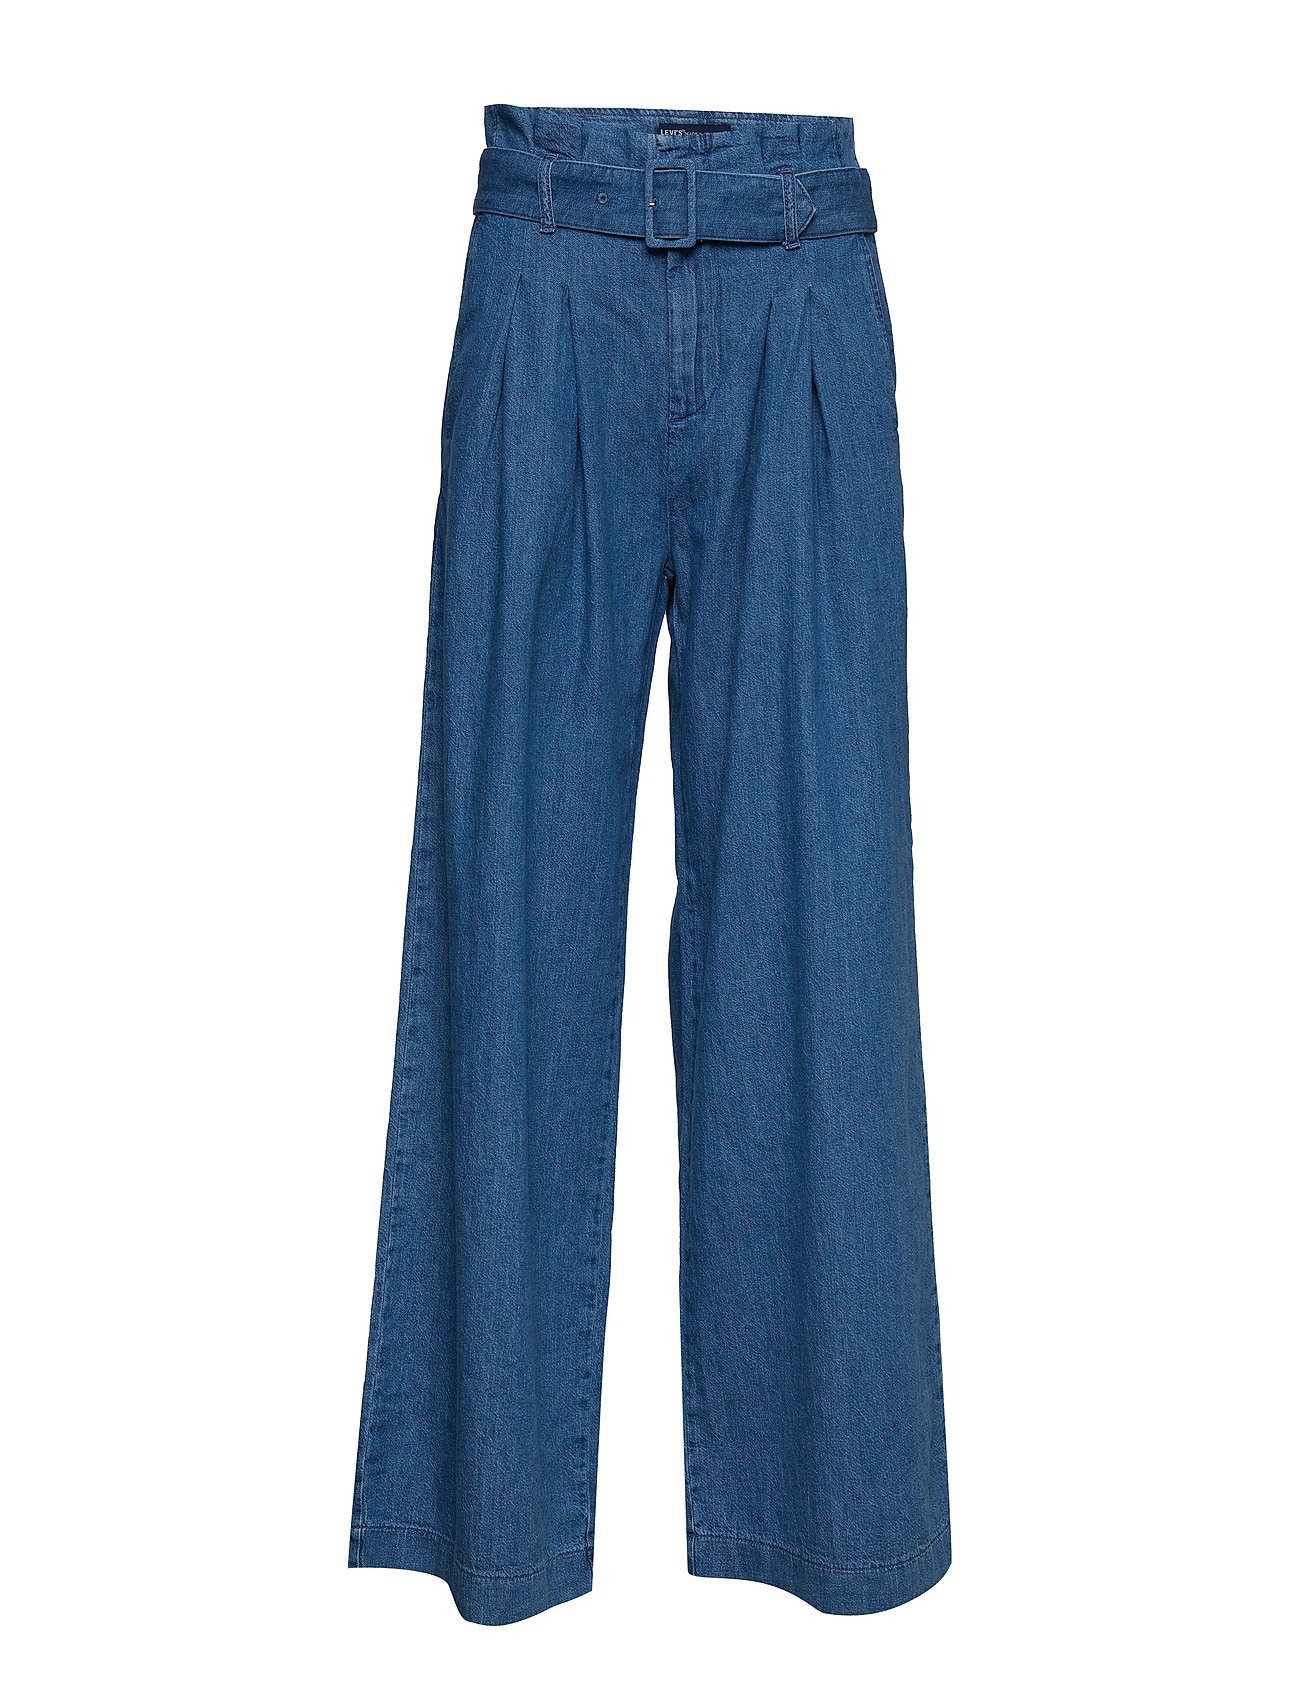 Levi's Made & Crafted LMC SCOUT PANT LMC COMFORT DEN - MED INDIGO - WORN IN